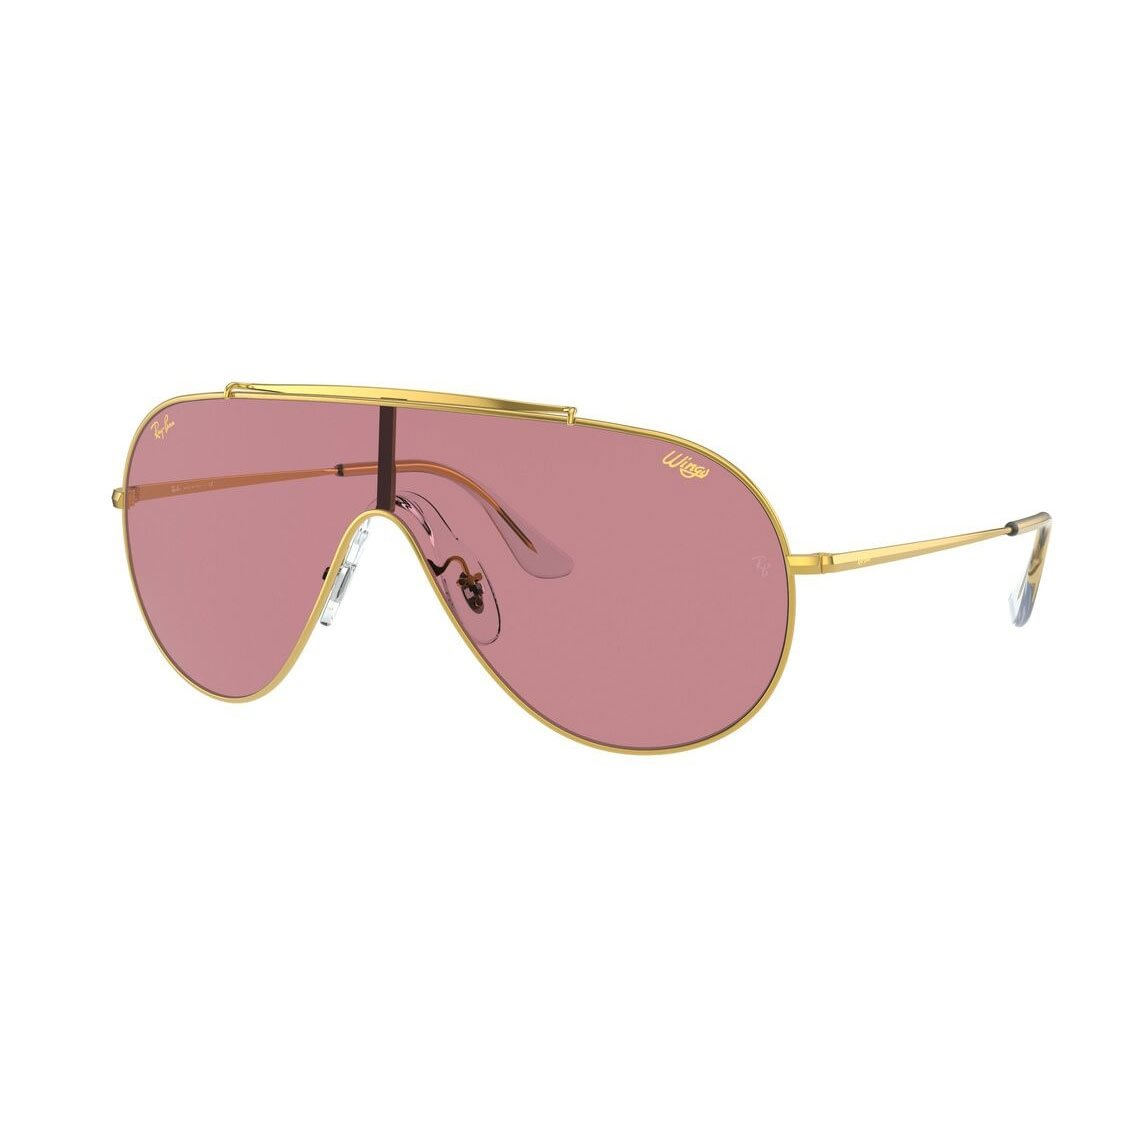 Ray-Ban Wings Legend Gold RB3597 919684 33